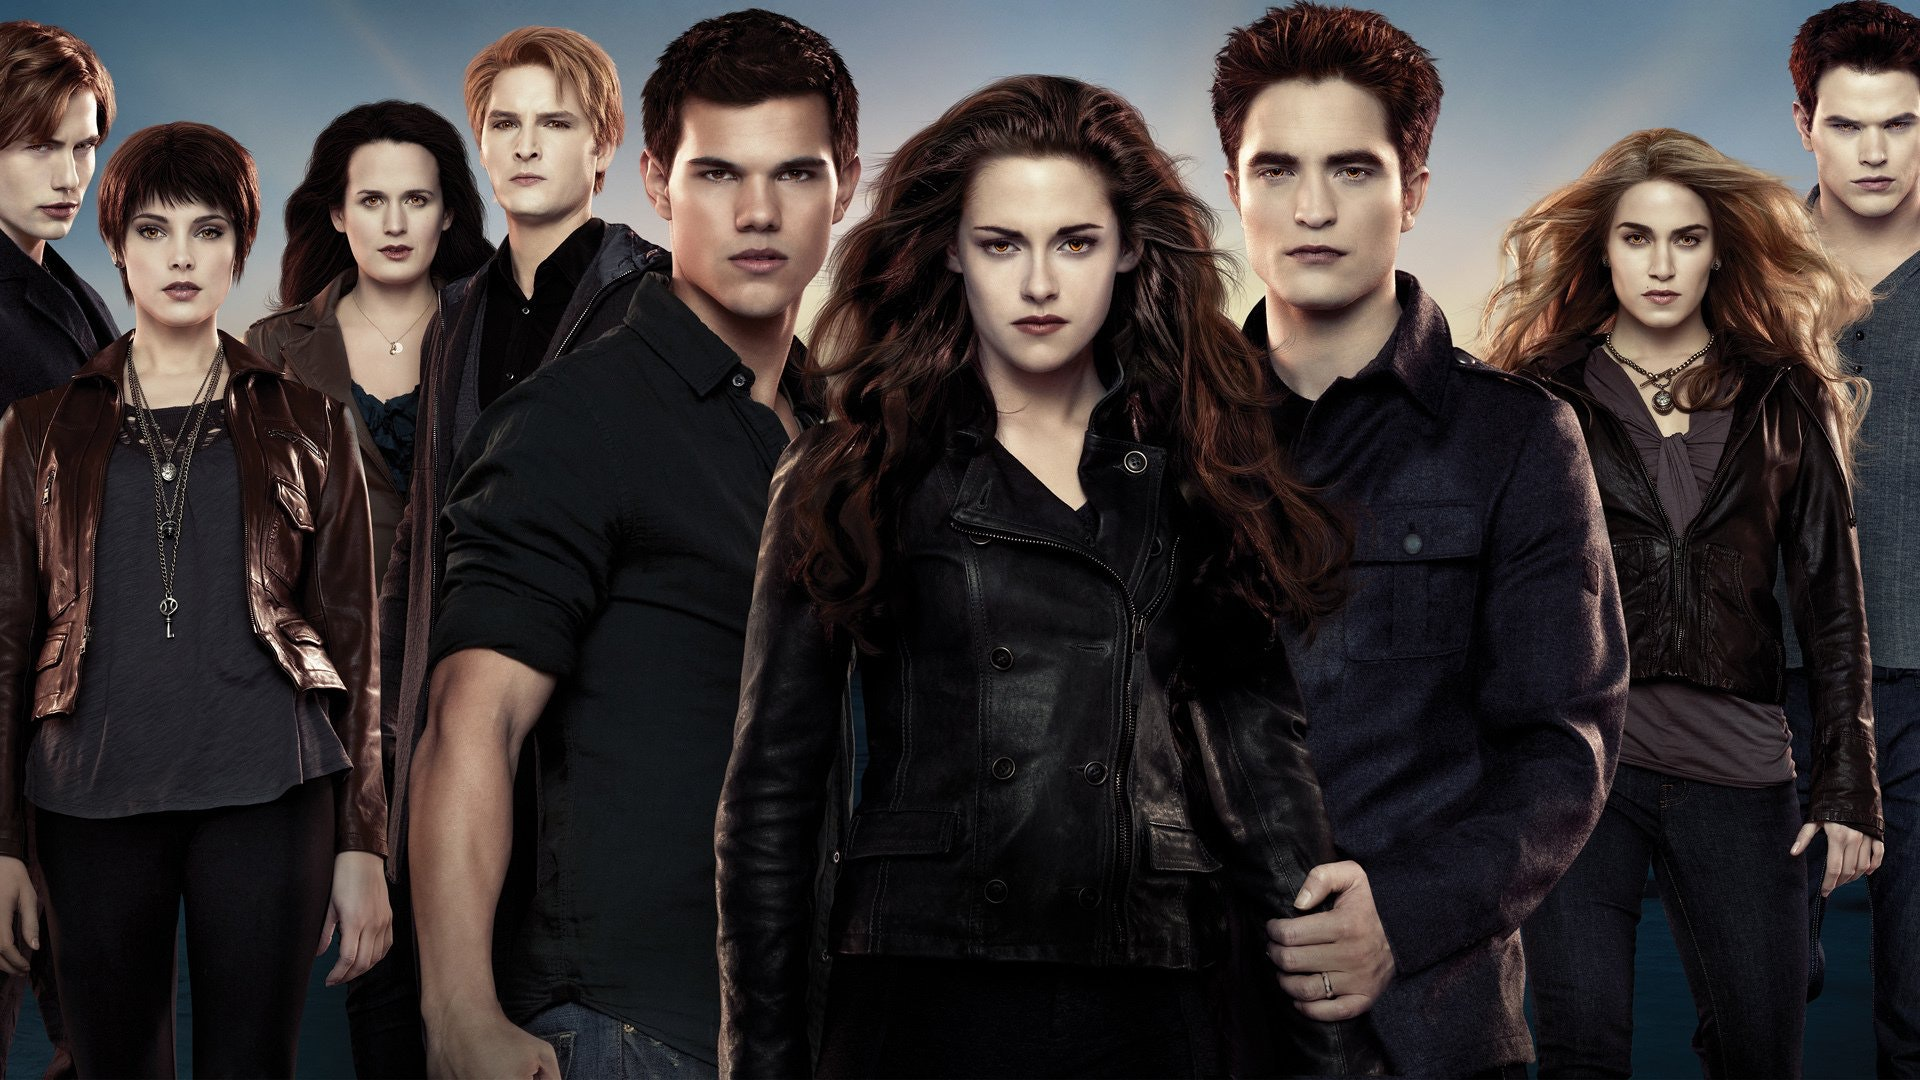 The Twilight Saga: Breaking Dawn - Part 2 Soundtrack